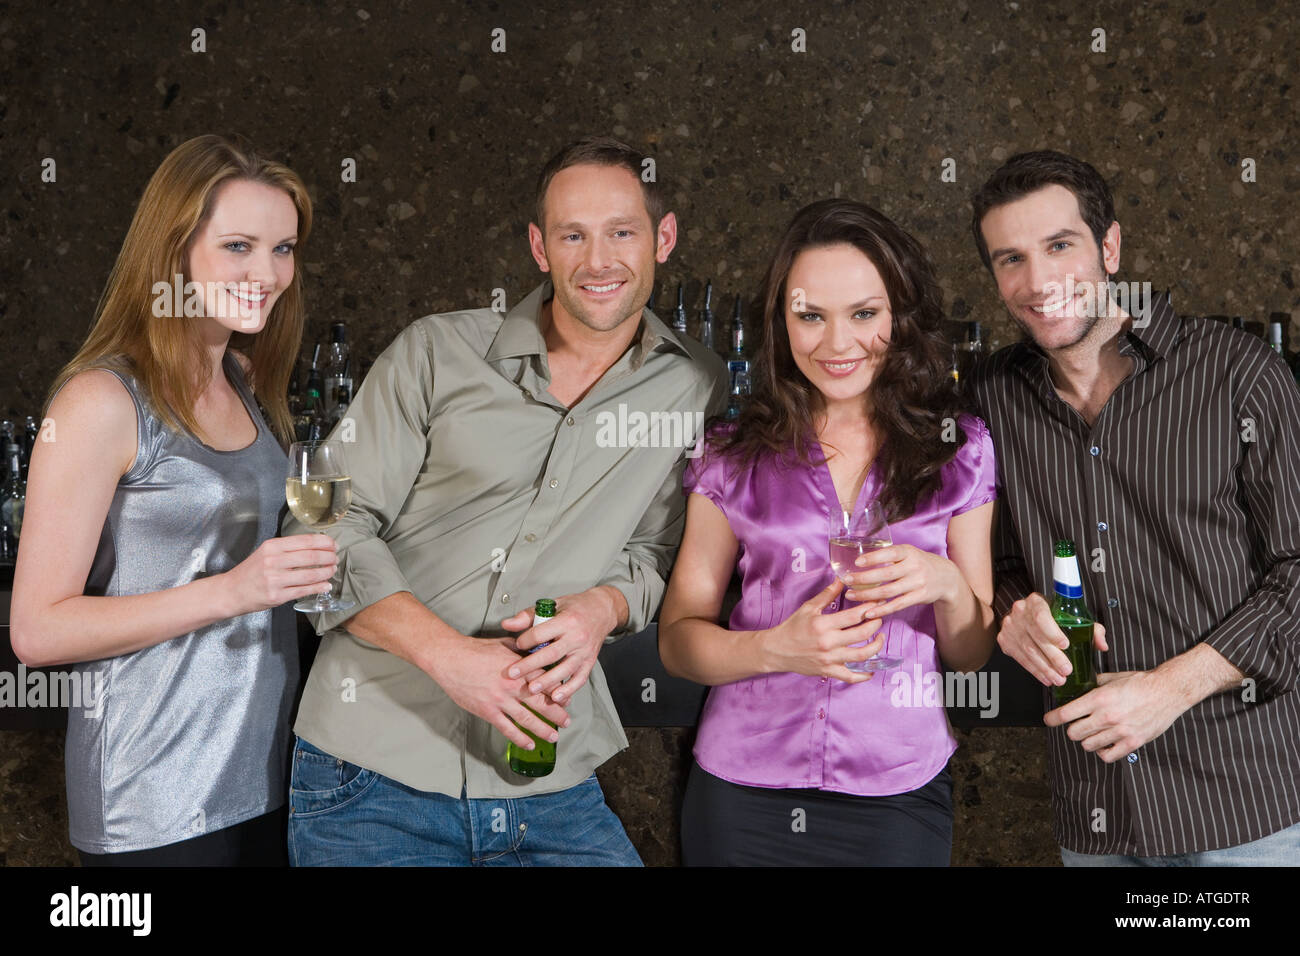 Friends drinking in a bar Stock Photo